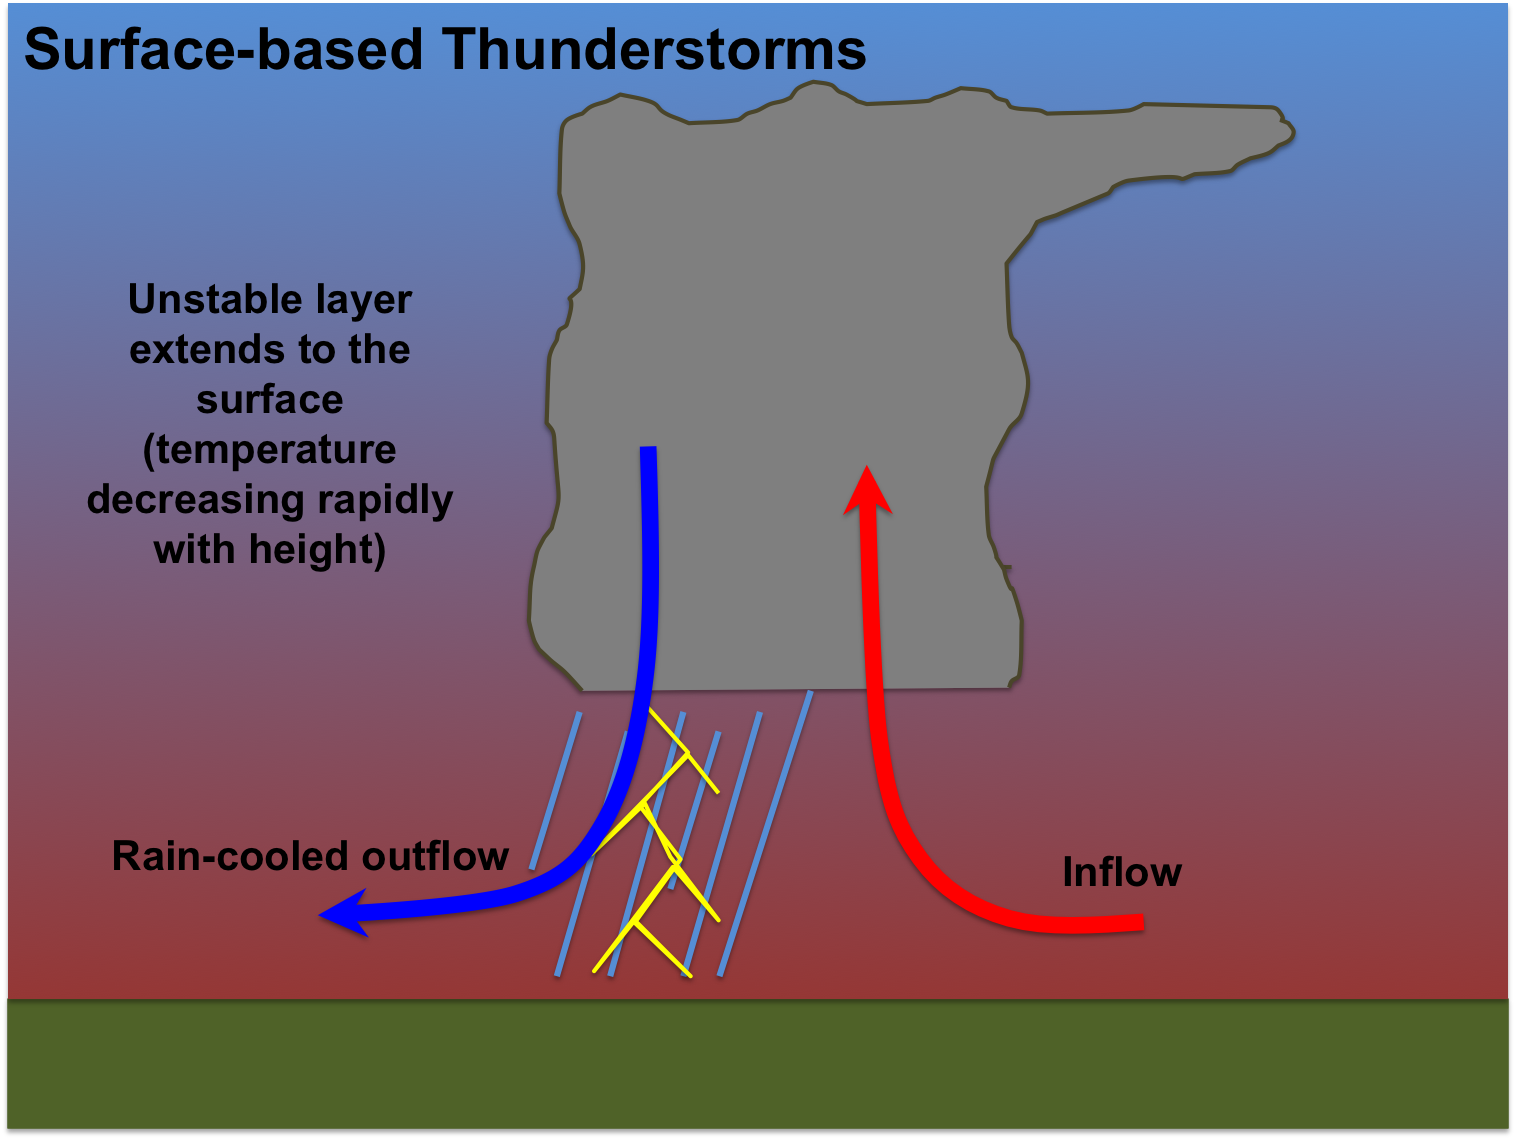 in an elevated thunderstorm this inflow originates well above the surface whereas with most thunderstorms the inflow originates near the surface